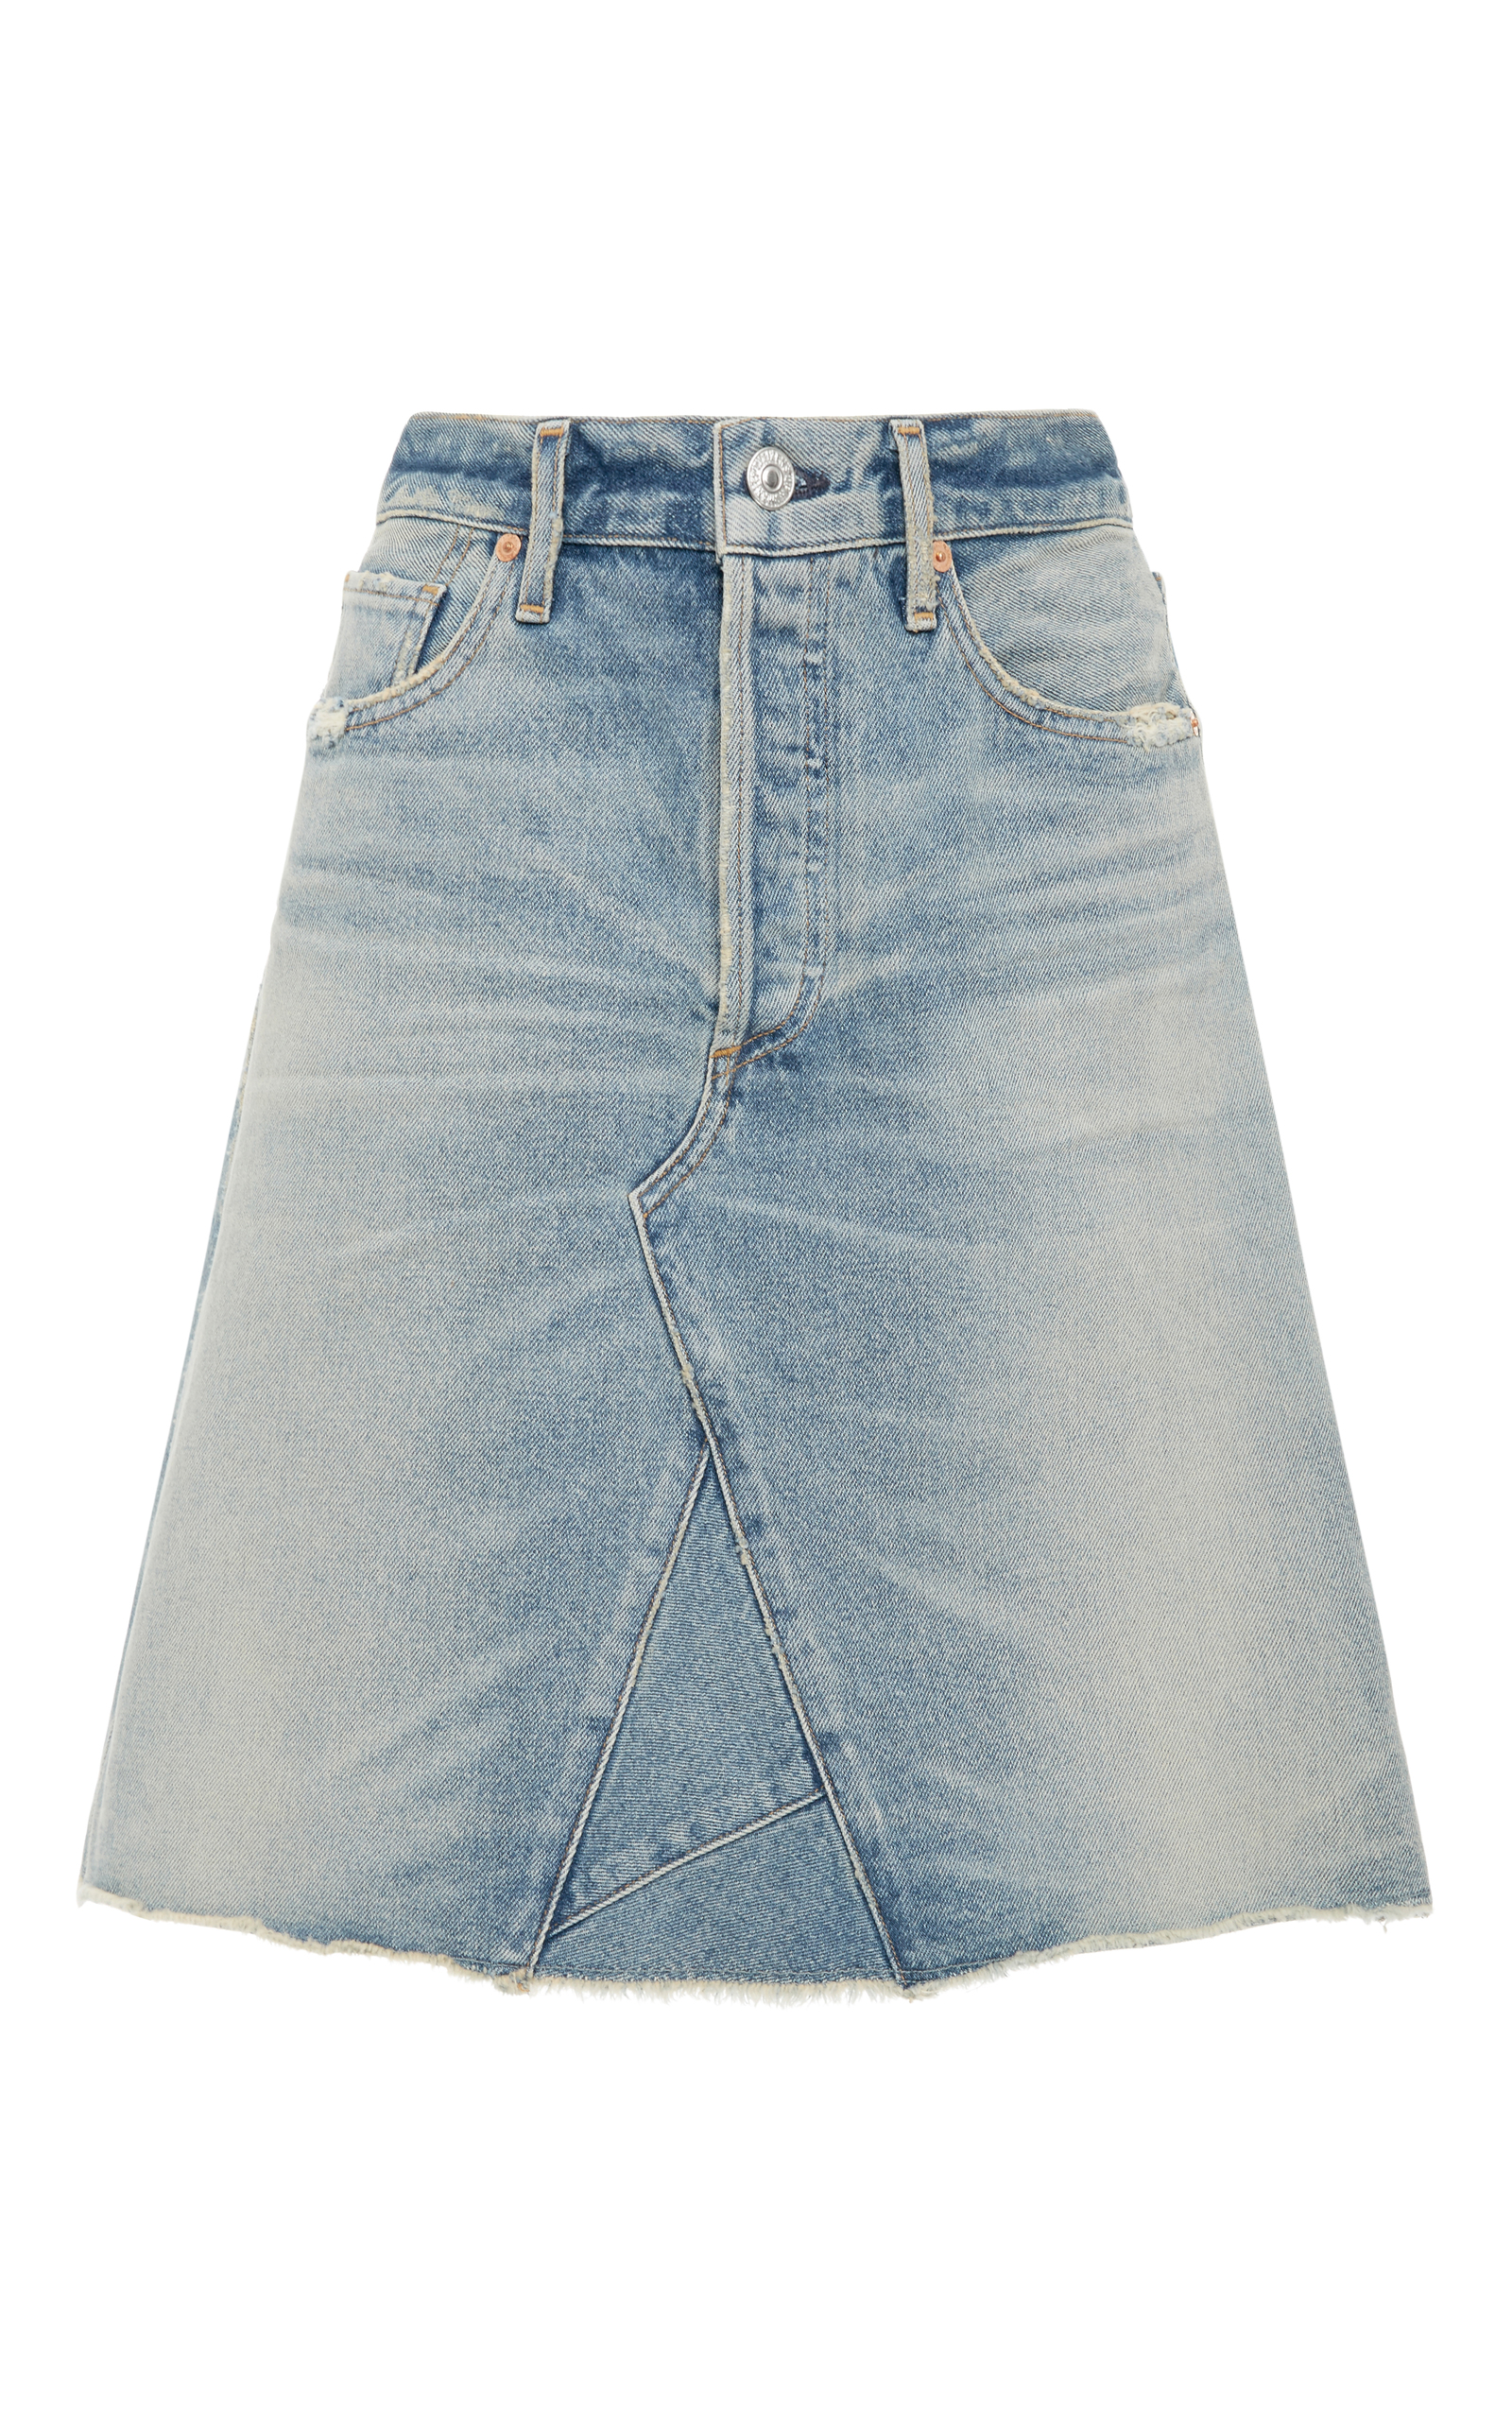 daaa086d72 Grey Denim Skirt Knee Length | Skirt Direct